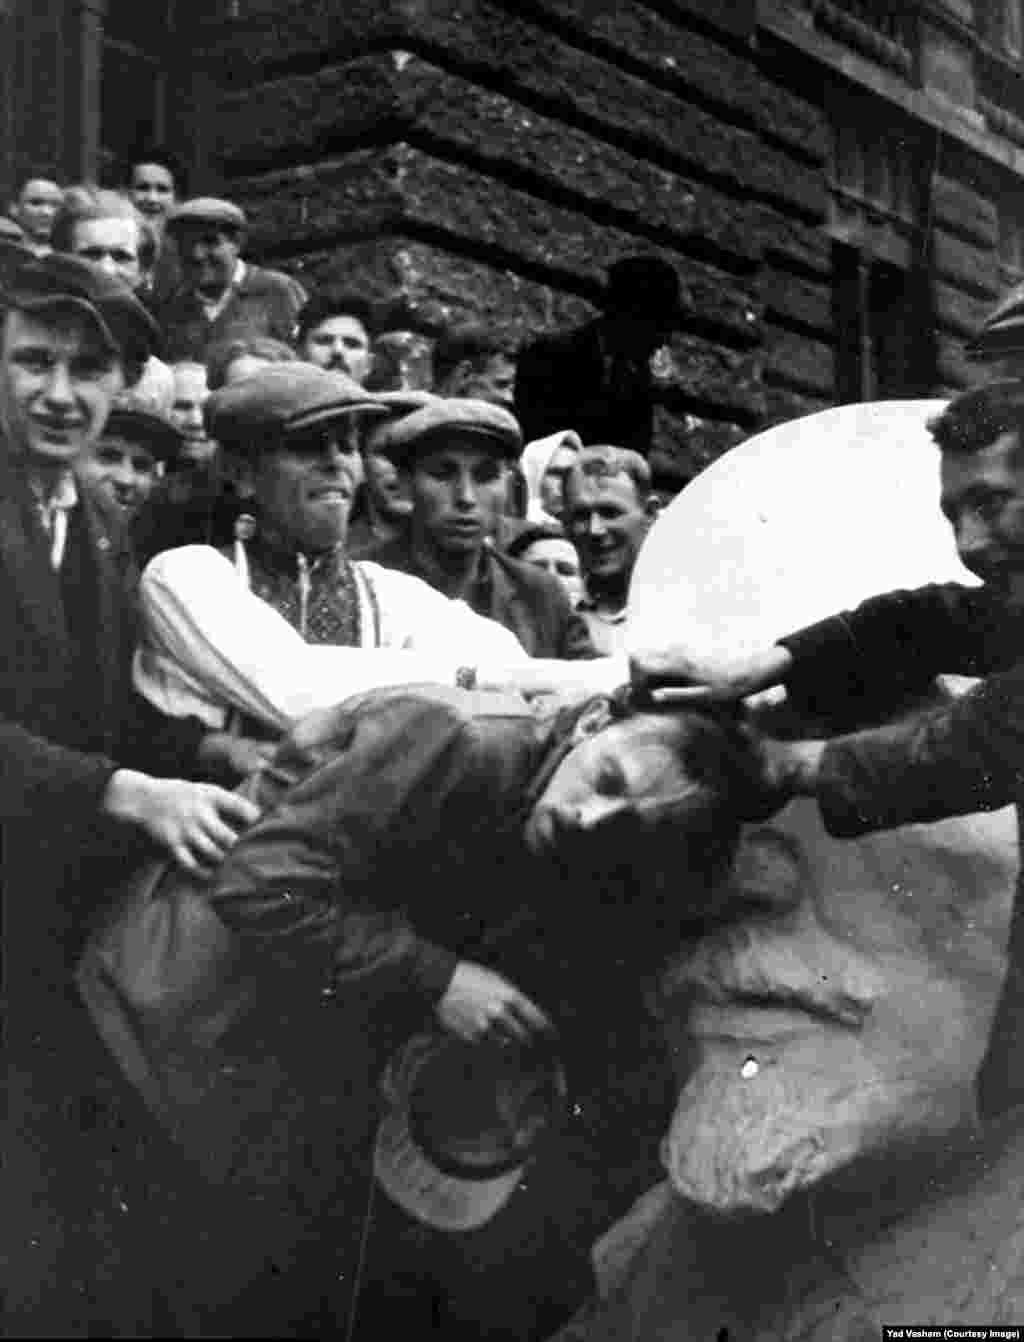 A Jewish man in western Ukraine being attacked by a mob next to a bust of Lenin. After occupying Nazi forces opened Soviet secret police prisons, atrocities carried out under Stalin were laid bare and exploited by Nazi propagandists, who fueled anti-Semitism by highlighting the Jewish backgrounds of some early Soviet leaders.